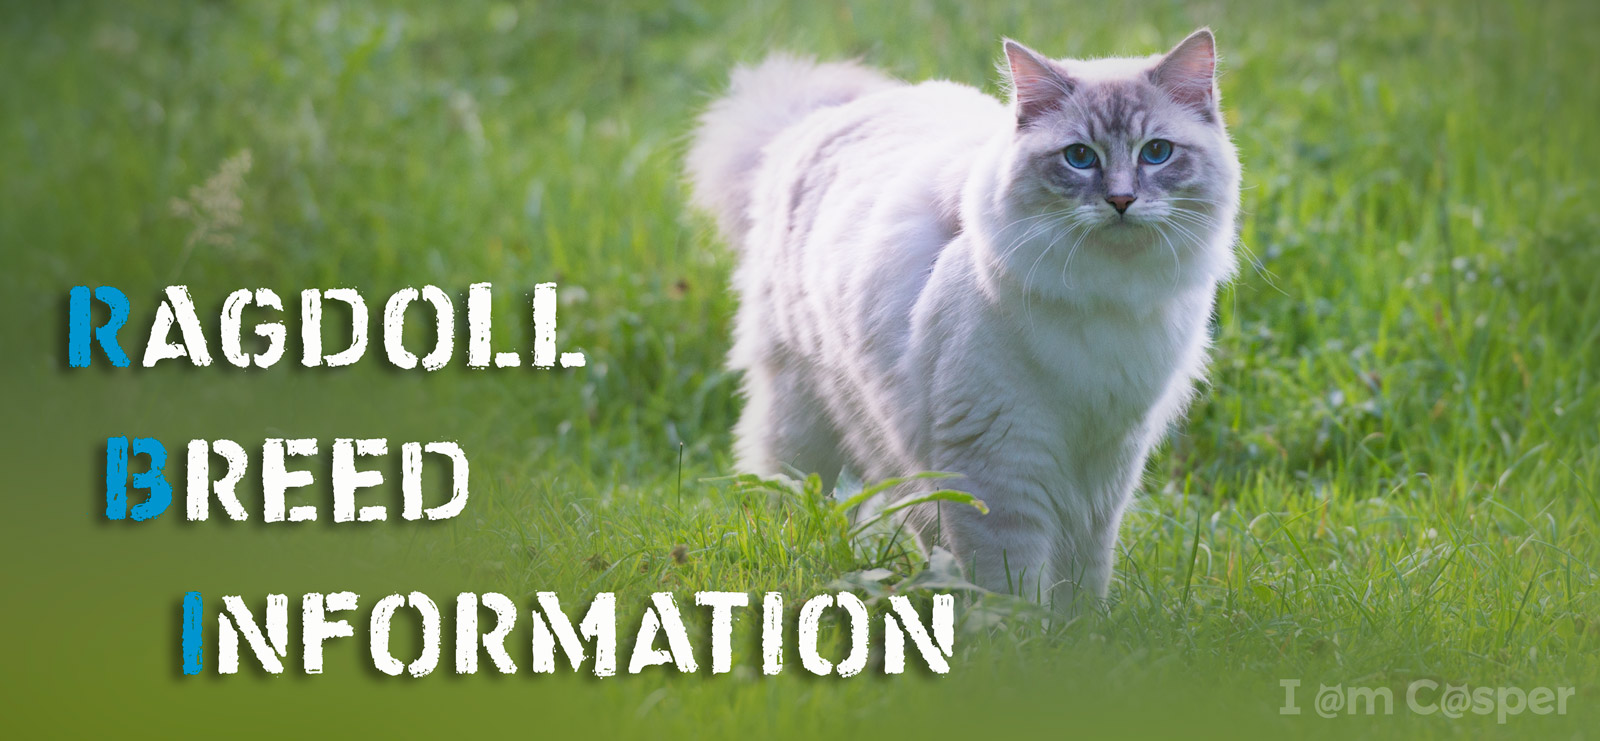 Casper ragdoll cat walking in grass and playing all about the ragdoll breed information